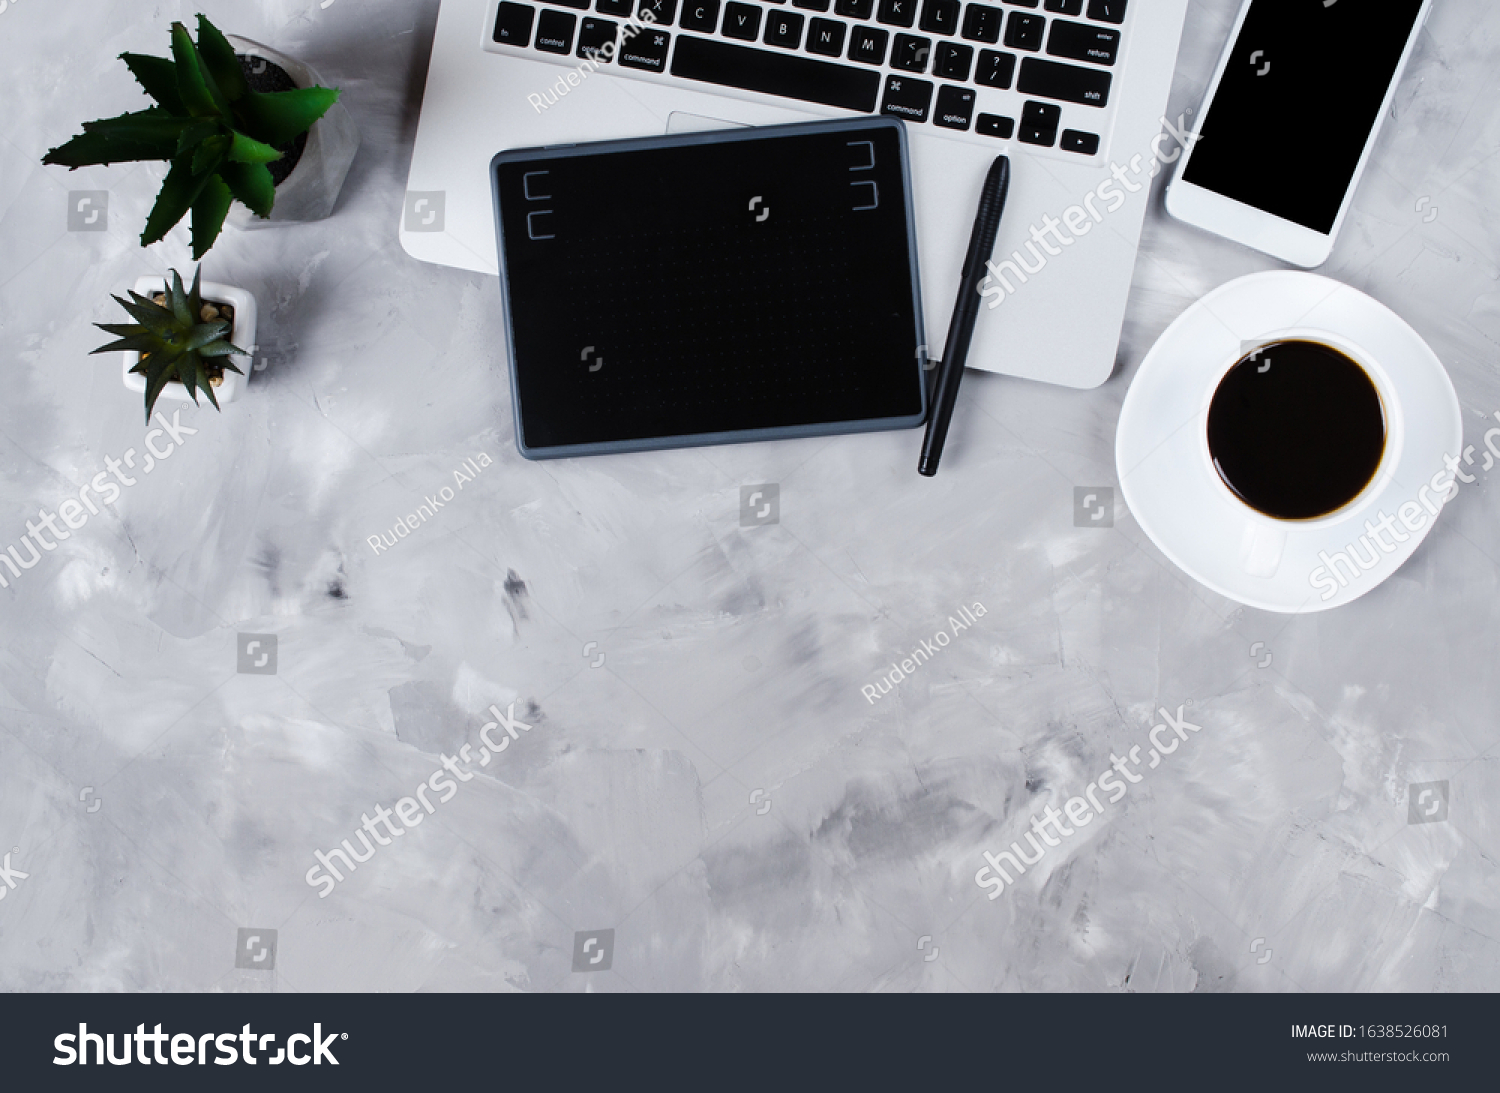 Workspace desk of creative designer, freelancer or photographer. Overhead view of graphic tablet, graphic pen, smartphone, laptop and a cup of black coffee. Flat lay #1638526081